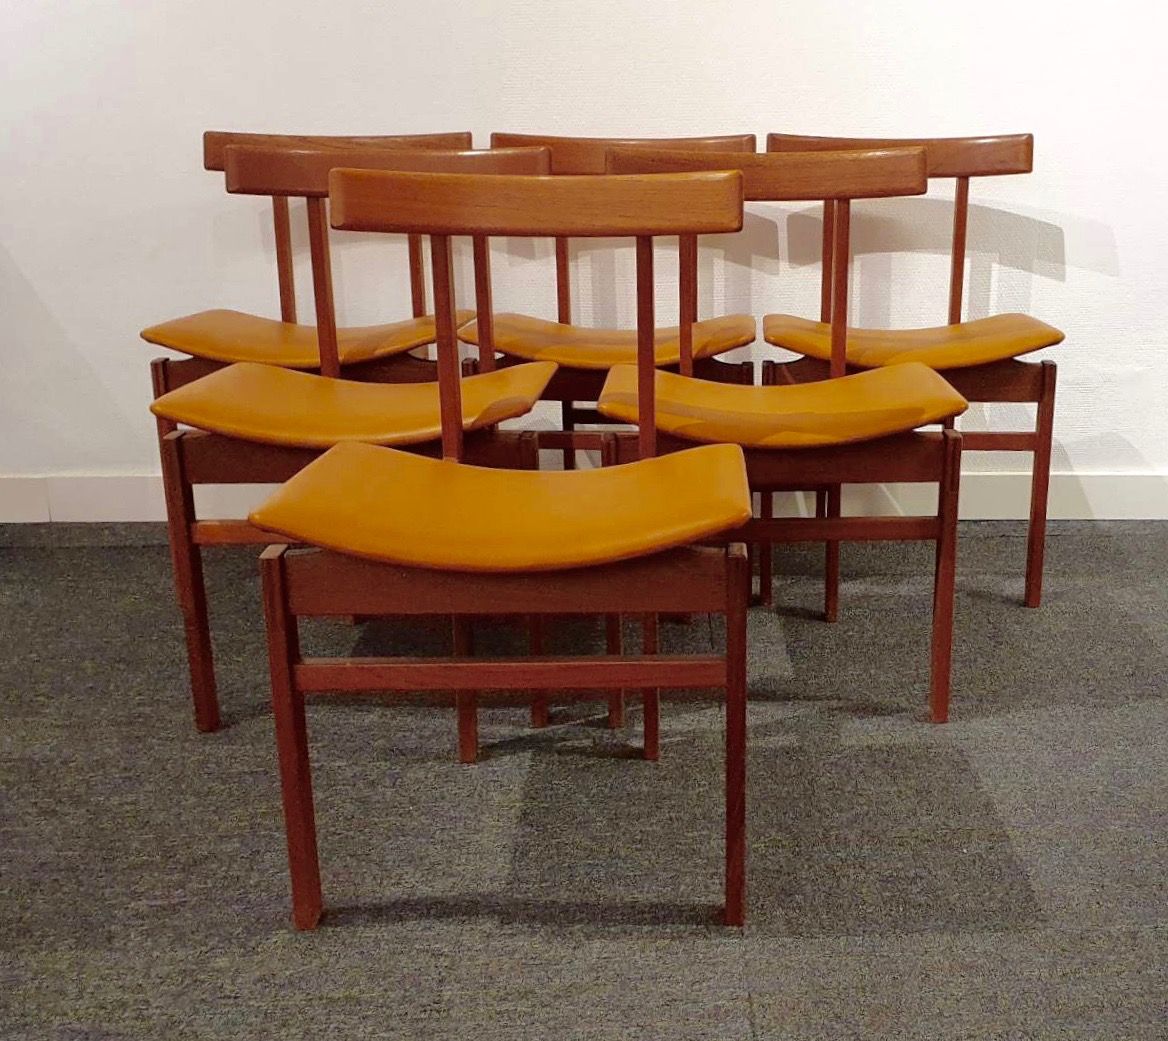 Set of 6 teak dining chairs, Inger Klingenberg, model 193 for France & Daverkosen 1960